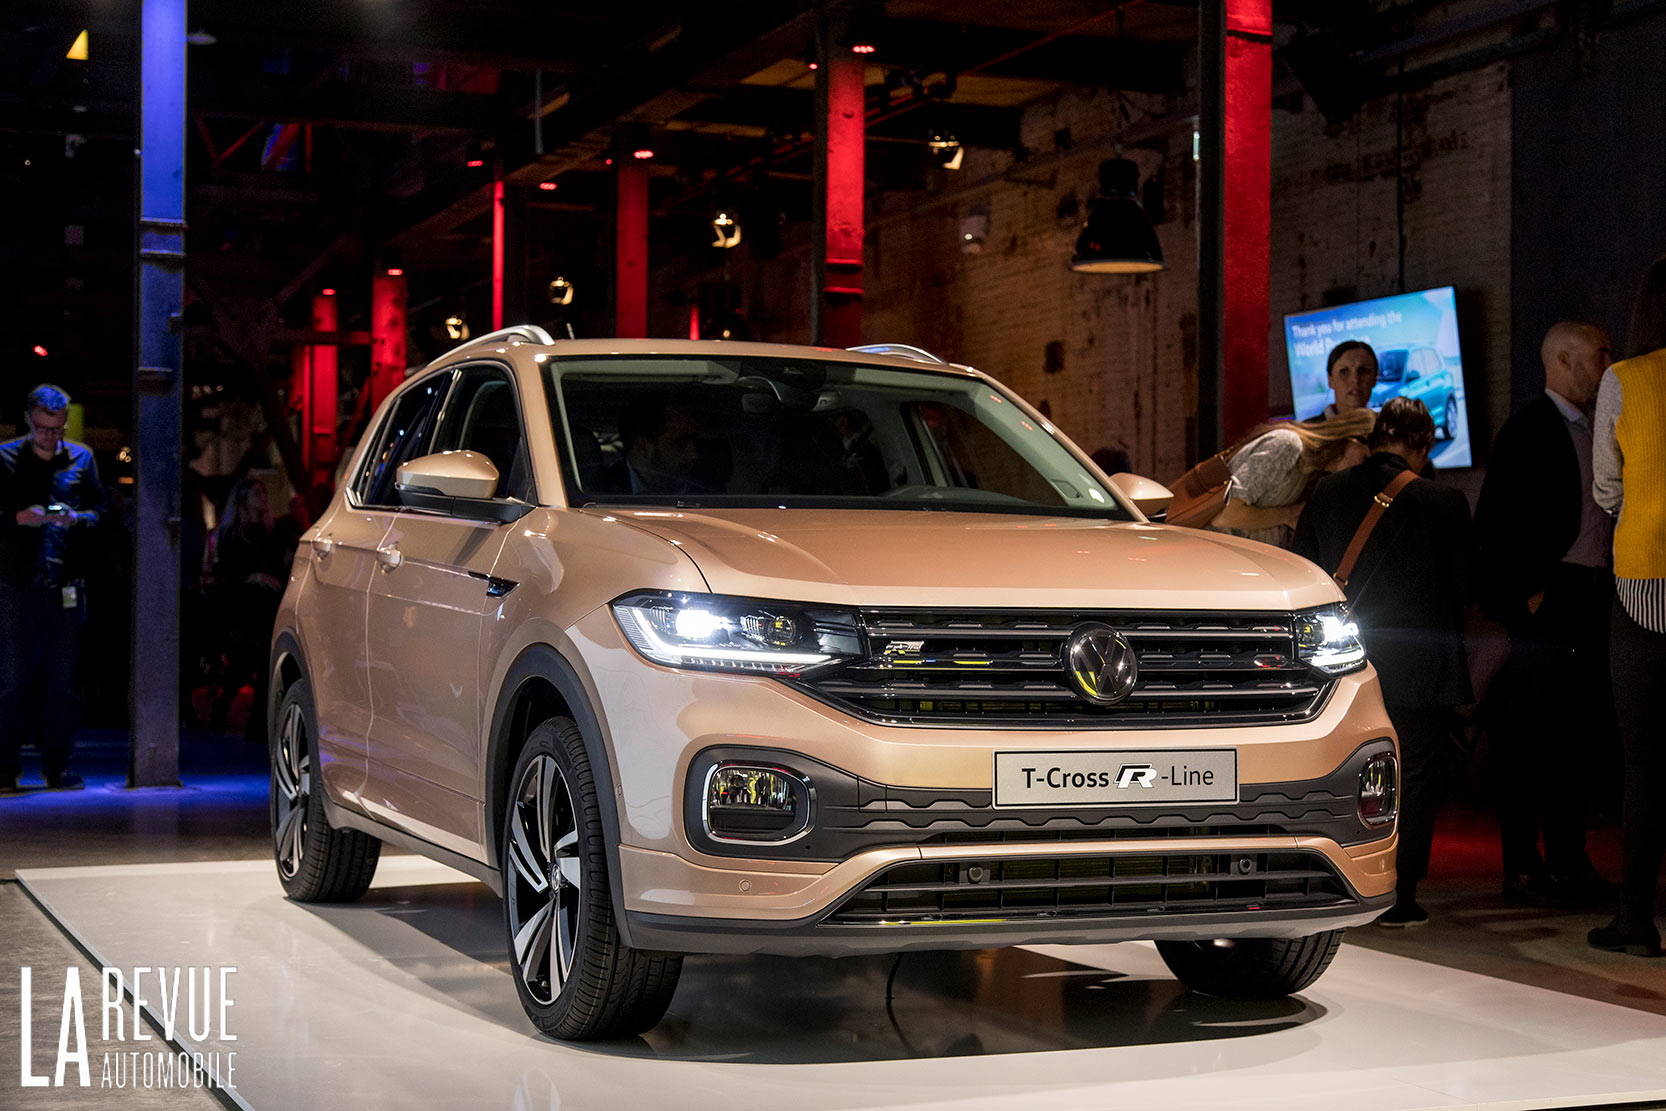 Exterieur_Volkswagen-T-Cross-Reveal_5